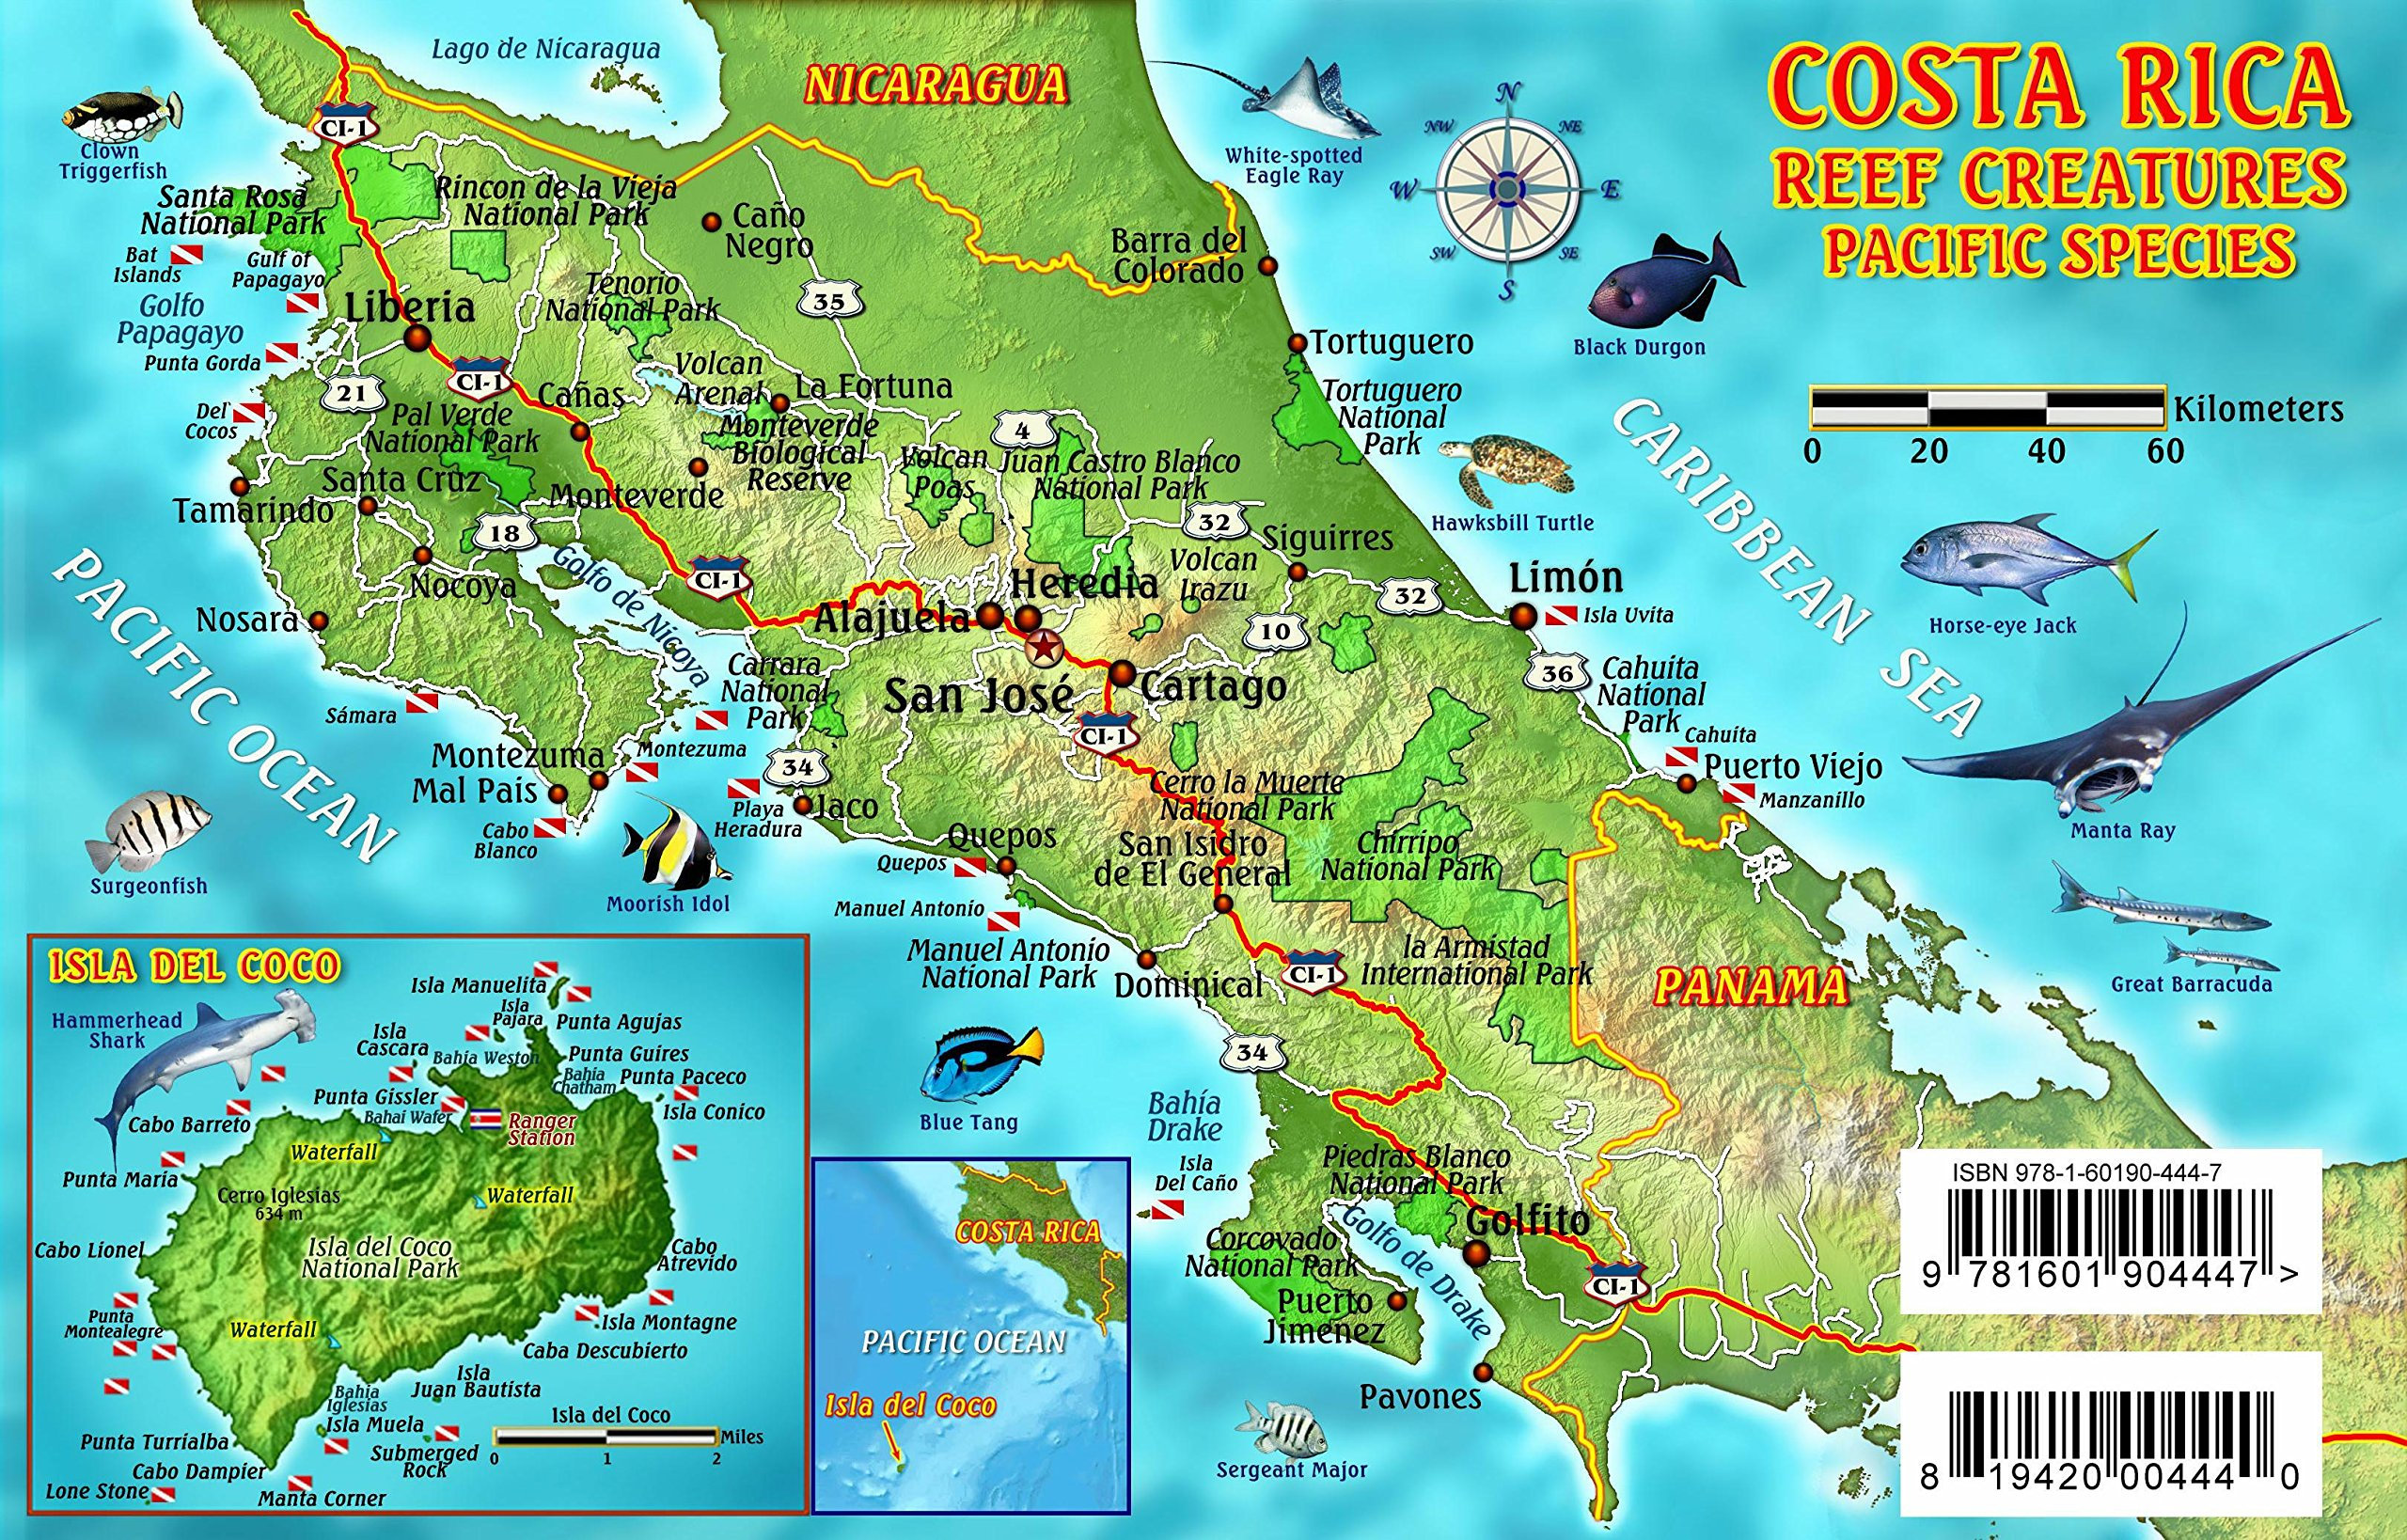 Costa Rica Dive Map Pacific Reef Creatures Guide Franko Maps